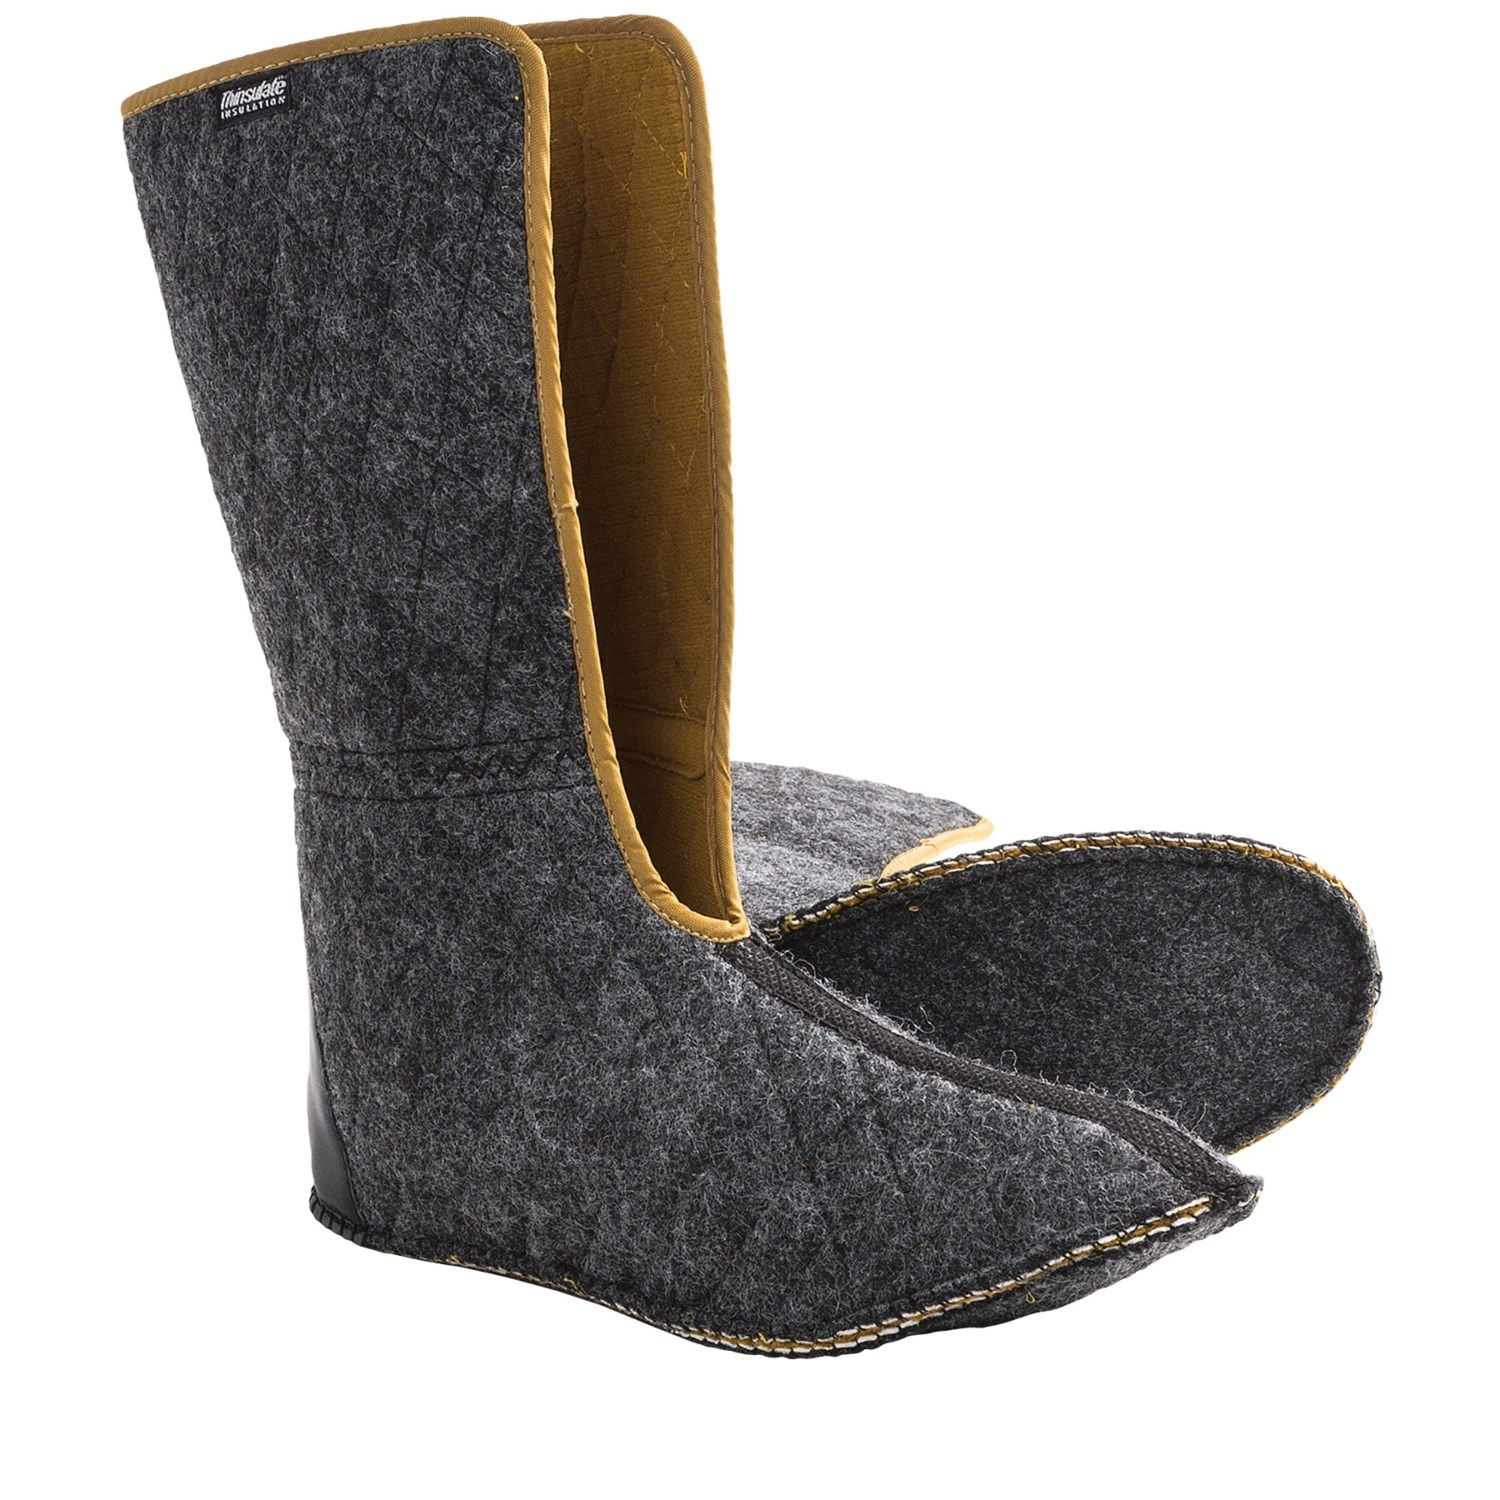 LaCrosse Mountaineer Boot Liners Wool Felt 200g Thinsulate 174 For